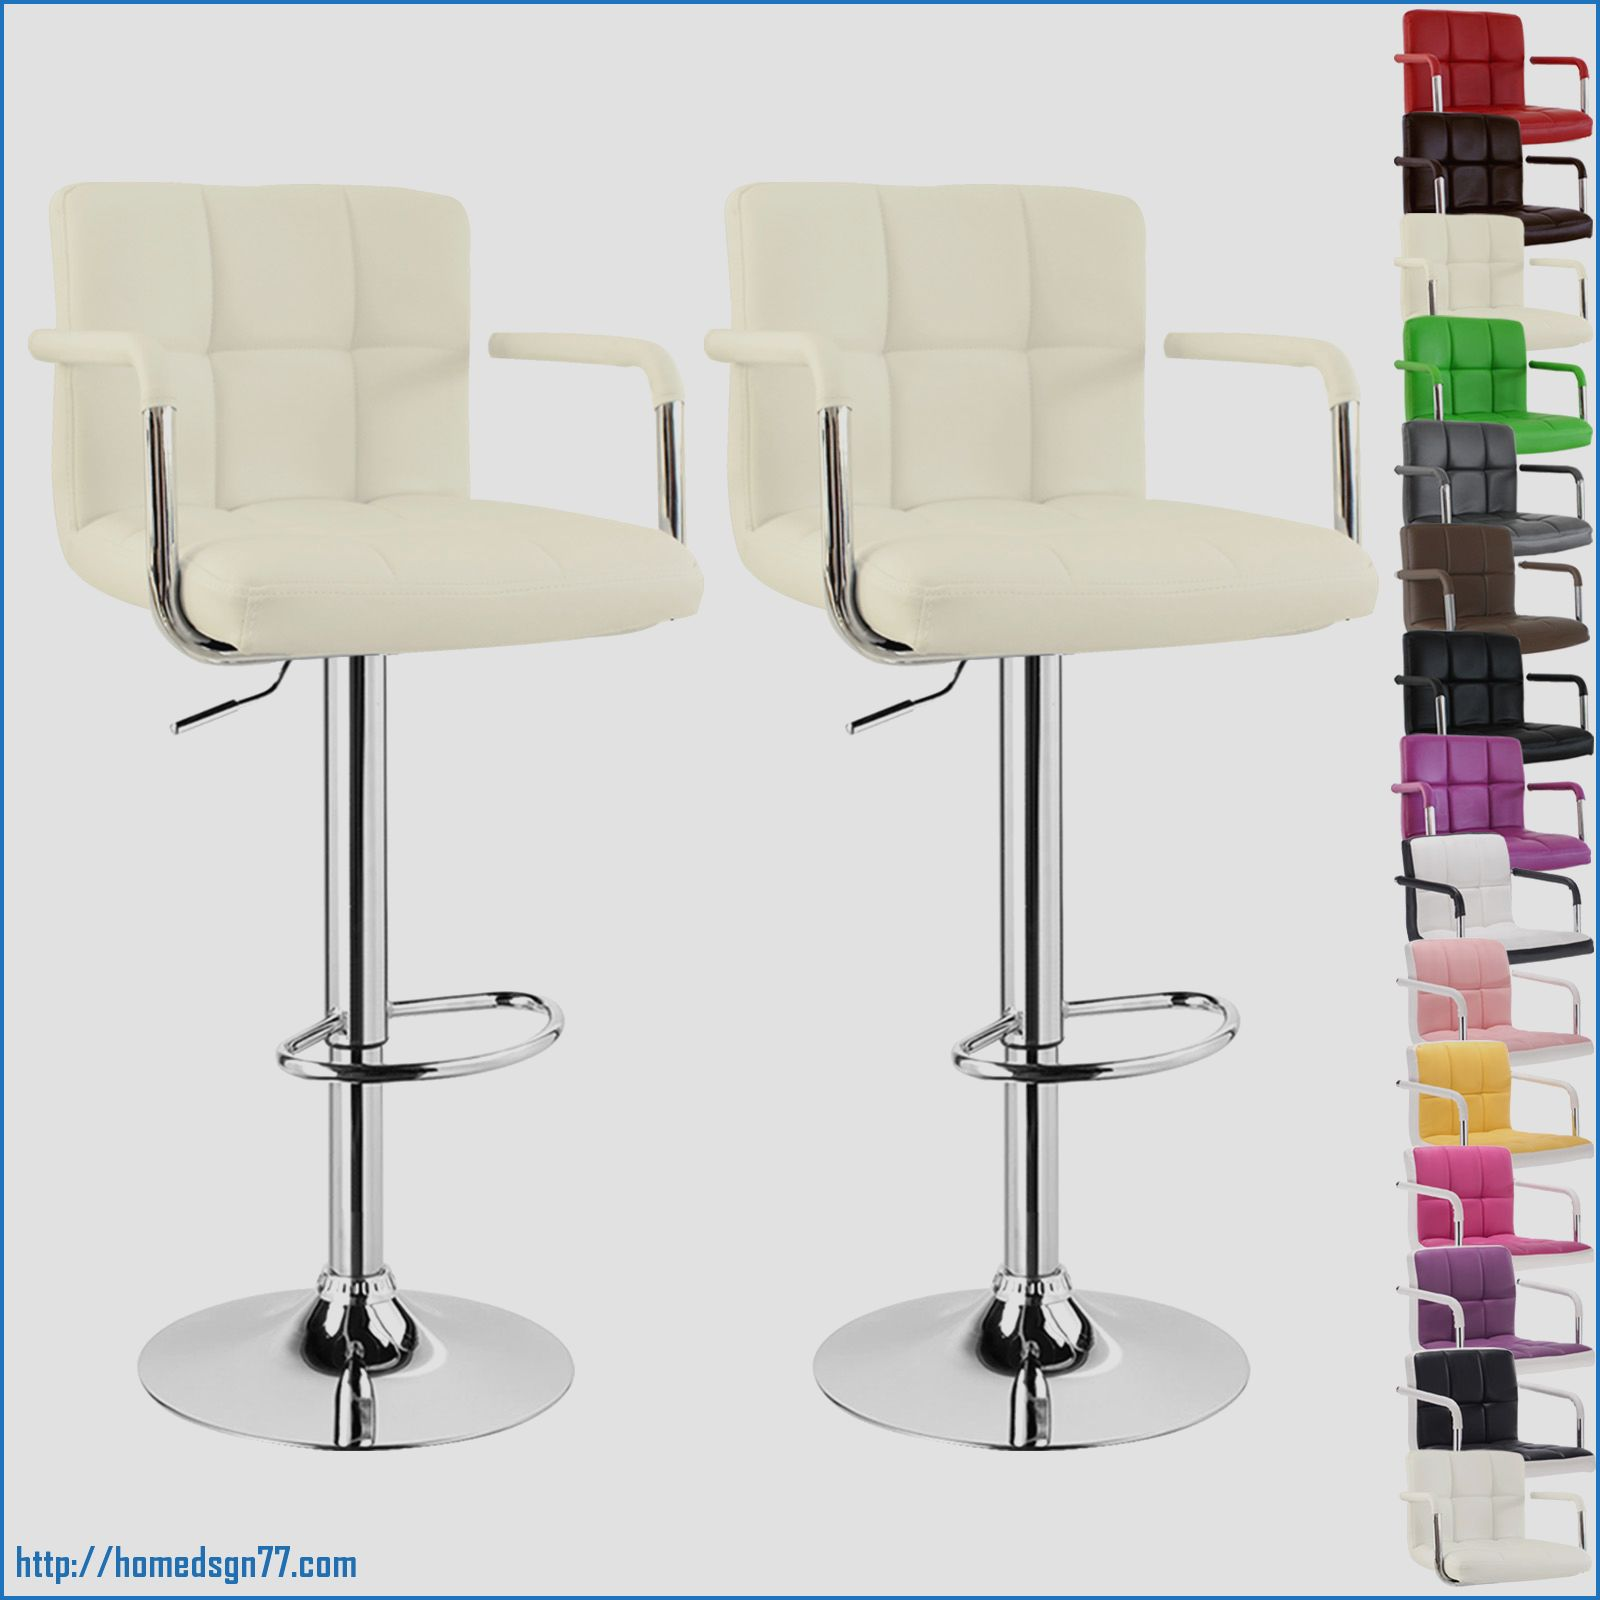 tabouret de bar occasion ebay maison et mobilier d 39 int rieur. Black Bedroom Furniture Sets. Home Design Ideas